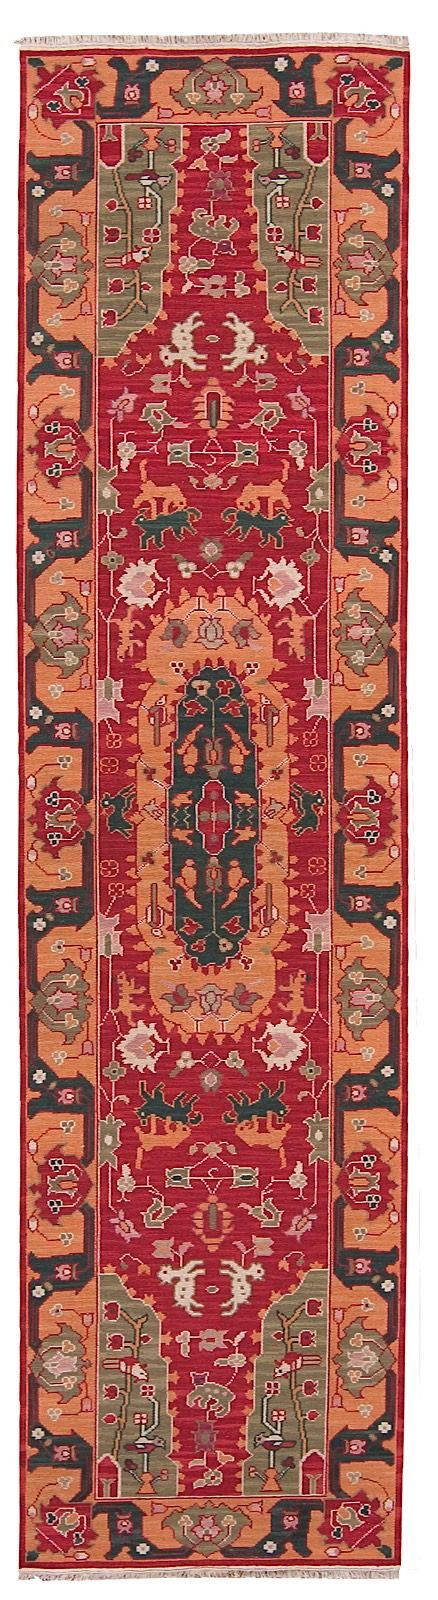 nourison nourmak southwestern/lodge area rug collection